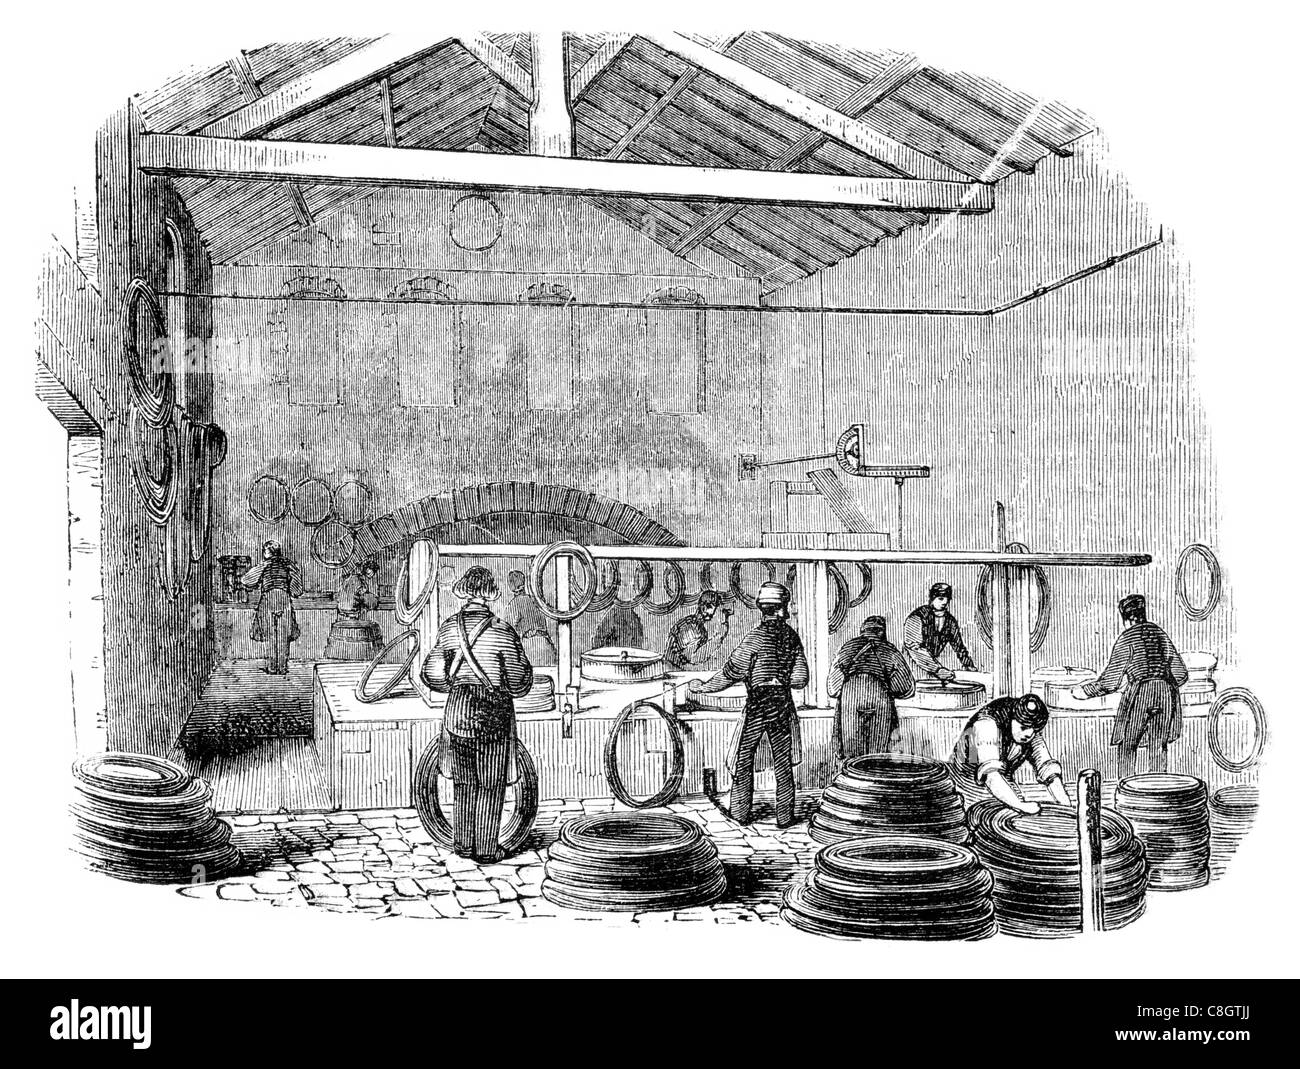 wire drawing machines Industrial Revolution machine industry factory manufacture construction workforce worker work - Stock Image